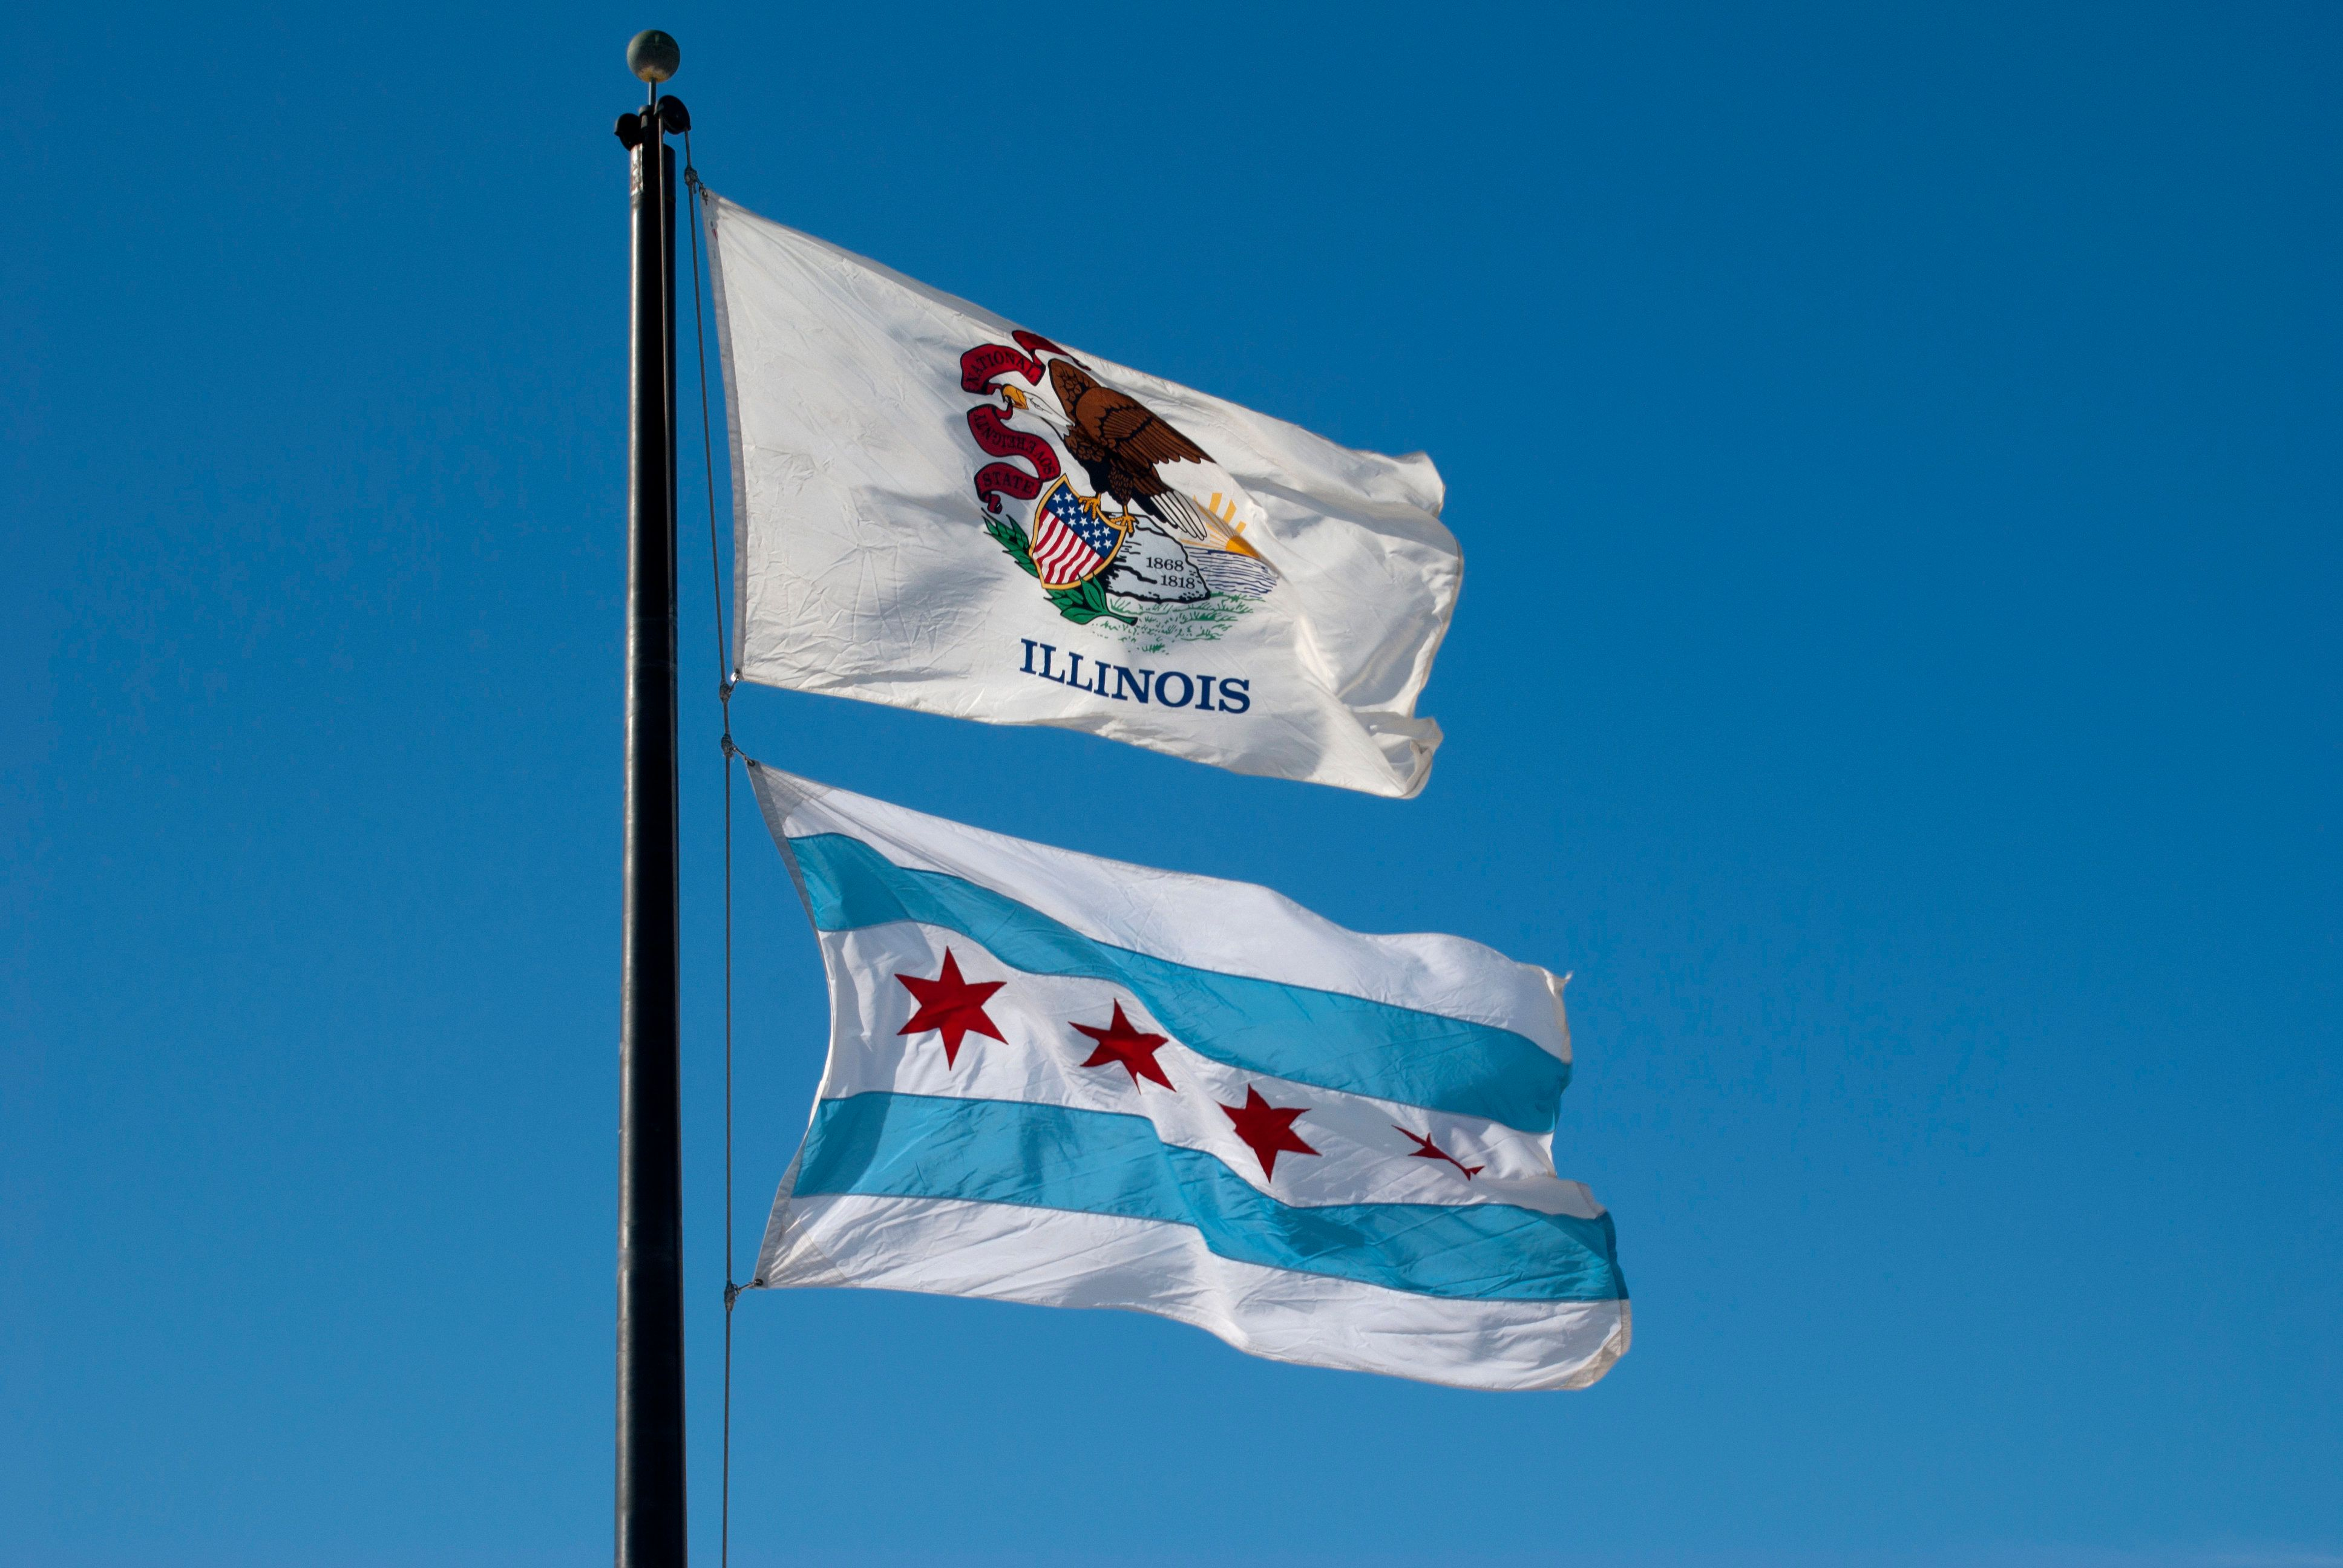 The Flag of the State of Illinois  and the municipal flag of the city of Chicago(below)